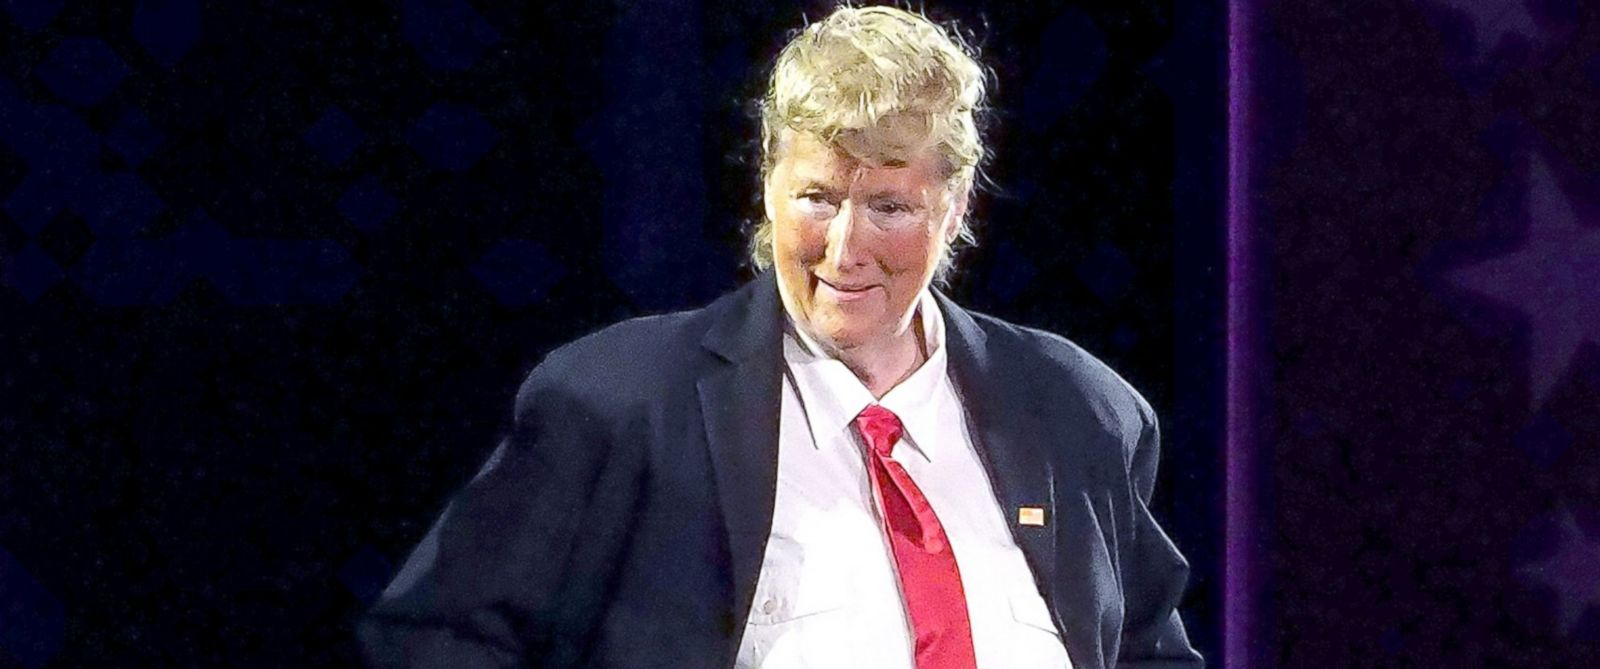 PHOTO: Meryl Streep, dressed as Donald Trump, performs onstage at the 2016 Public Theater Gala at Delacorte Theater, June 6, 2016, in New York City.